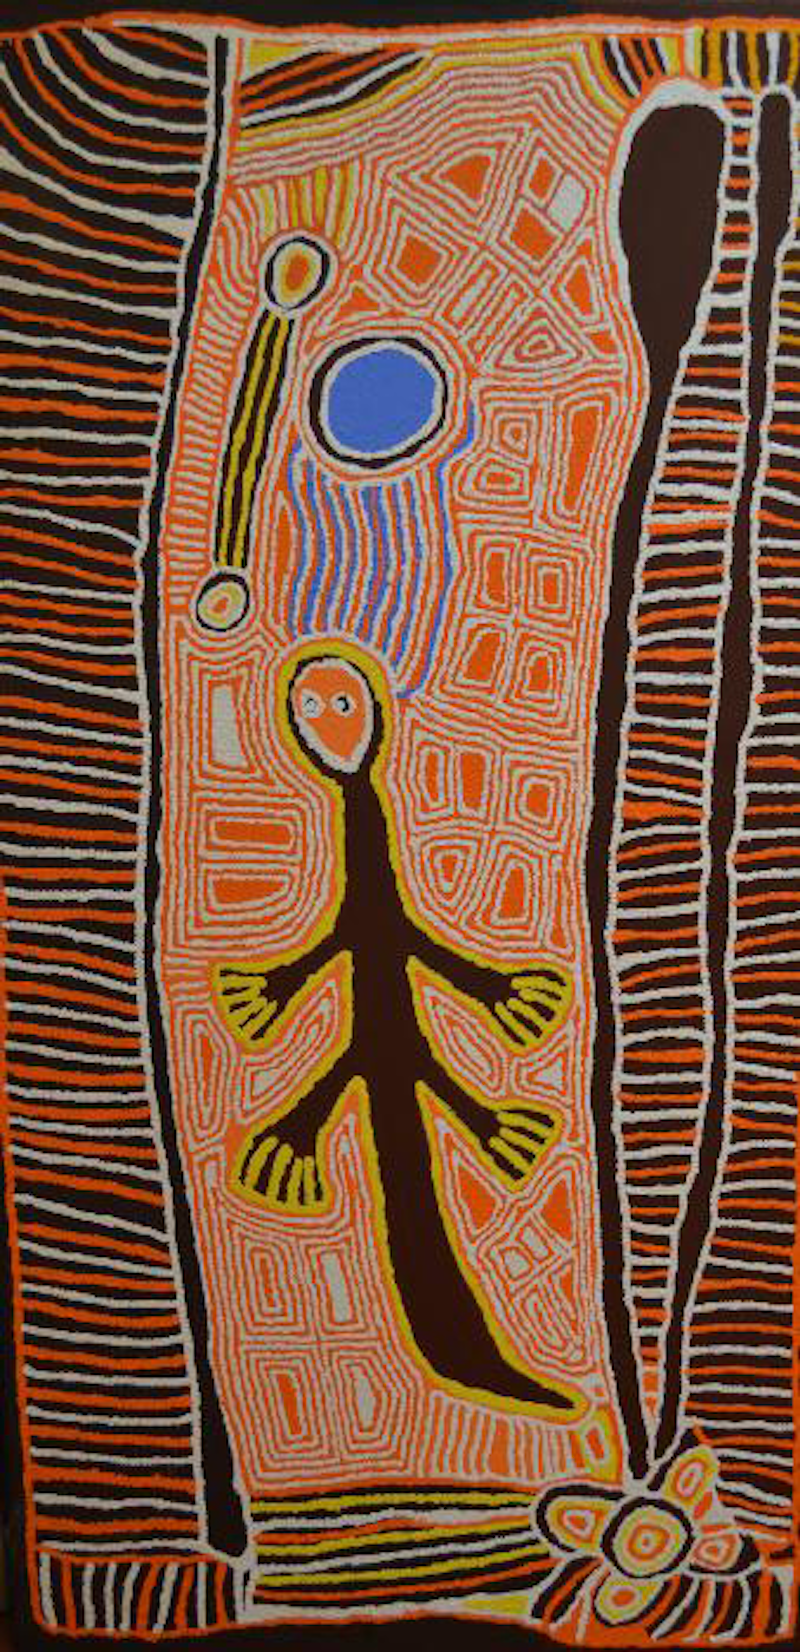 (CreativeWork) Kangaroo Man 1466-11 by Linda Syddick Napaltjarri. Acrylic Paint. Shop online at Bluethumb.